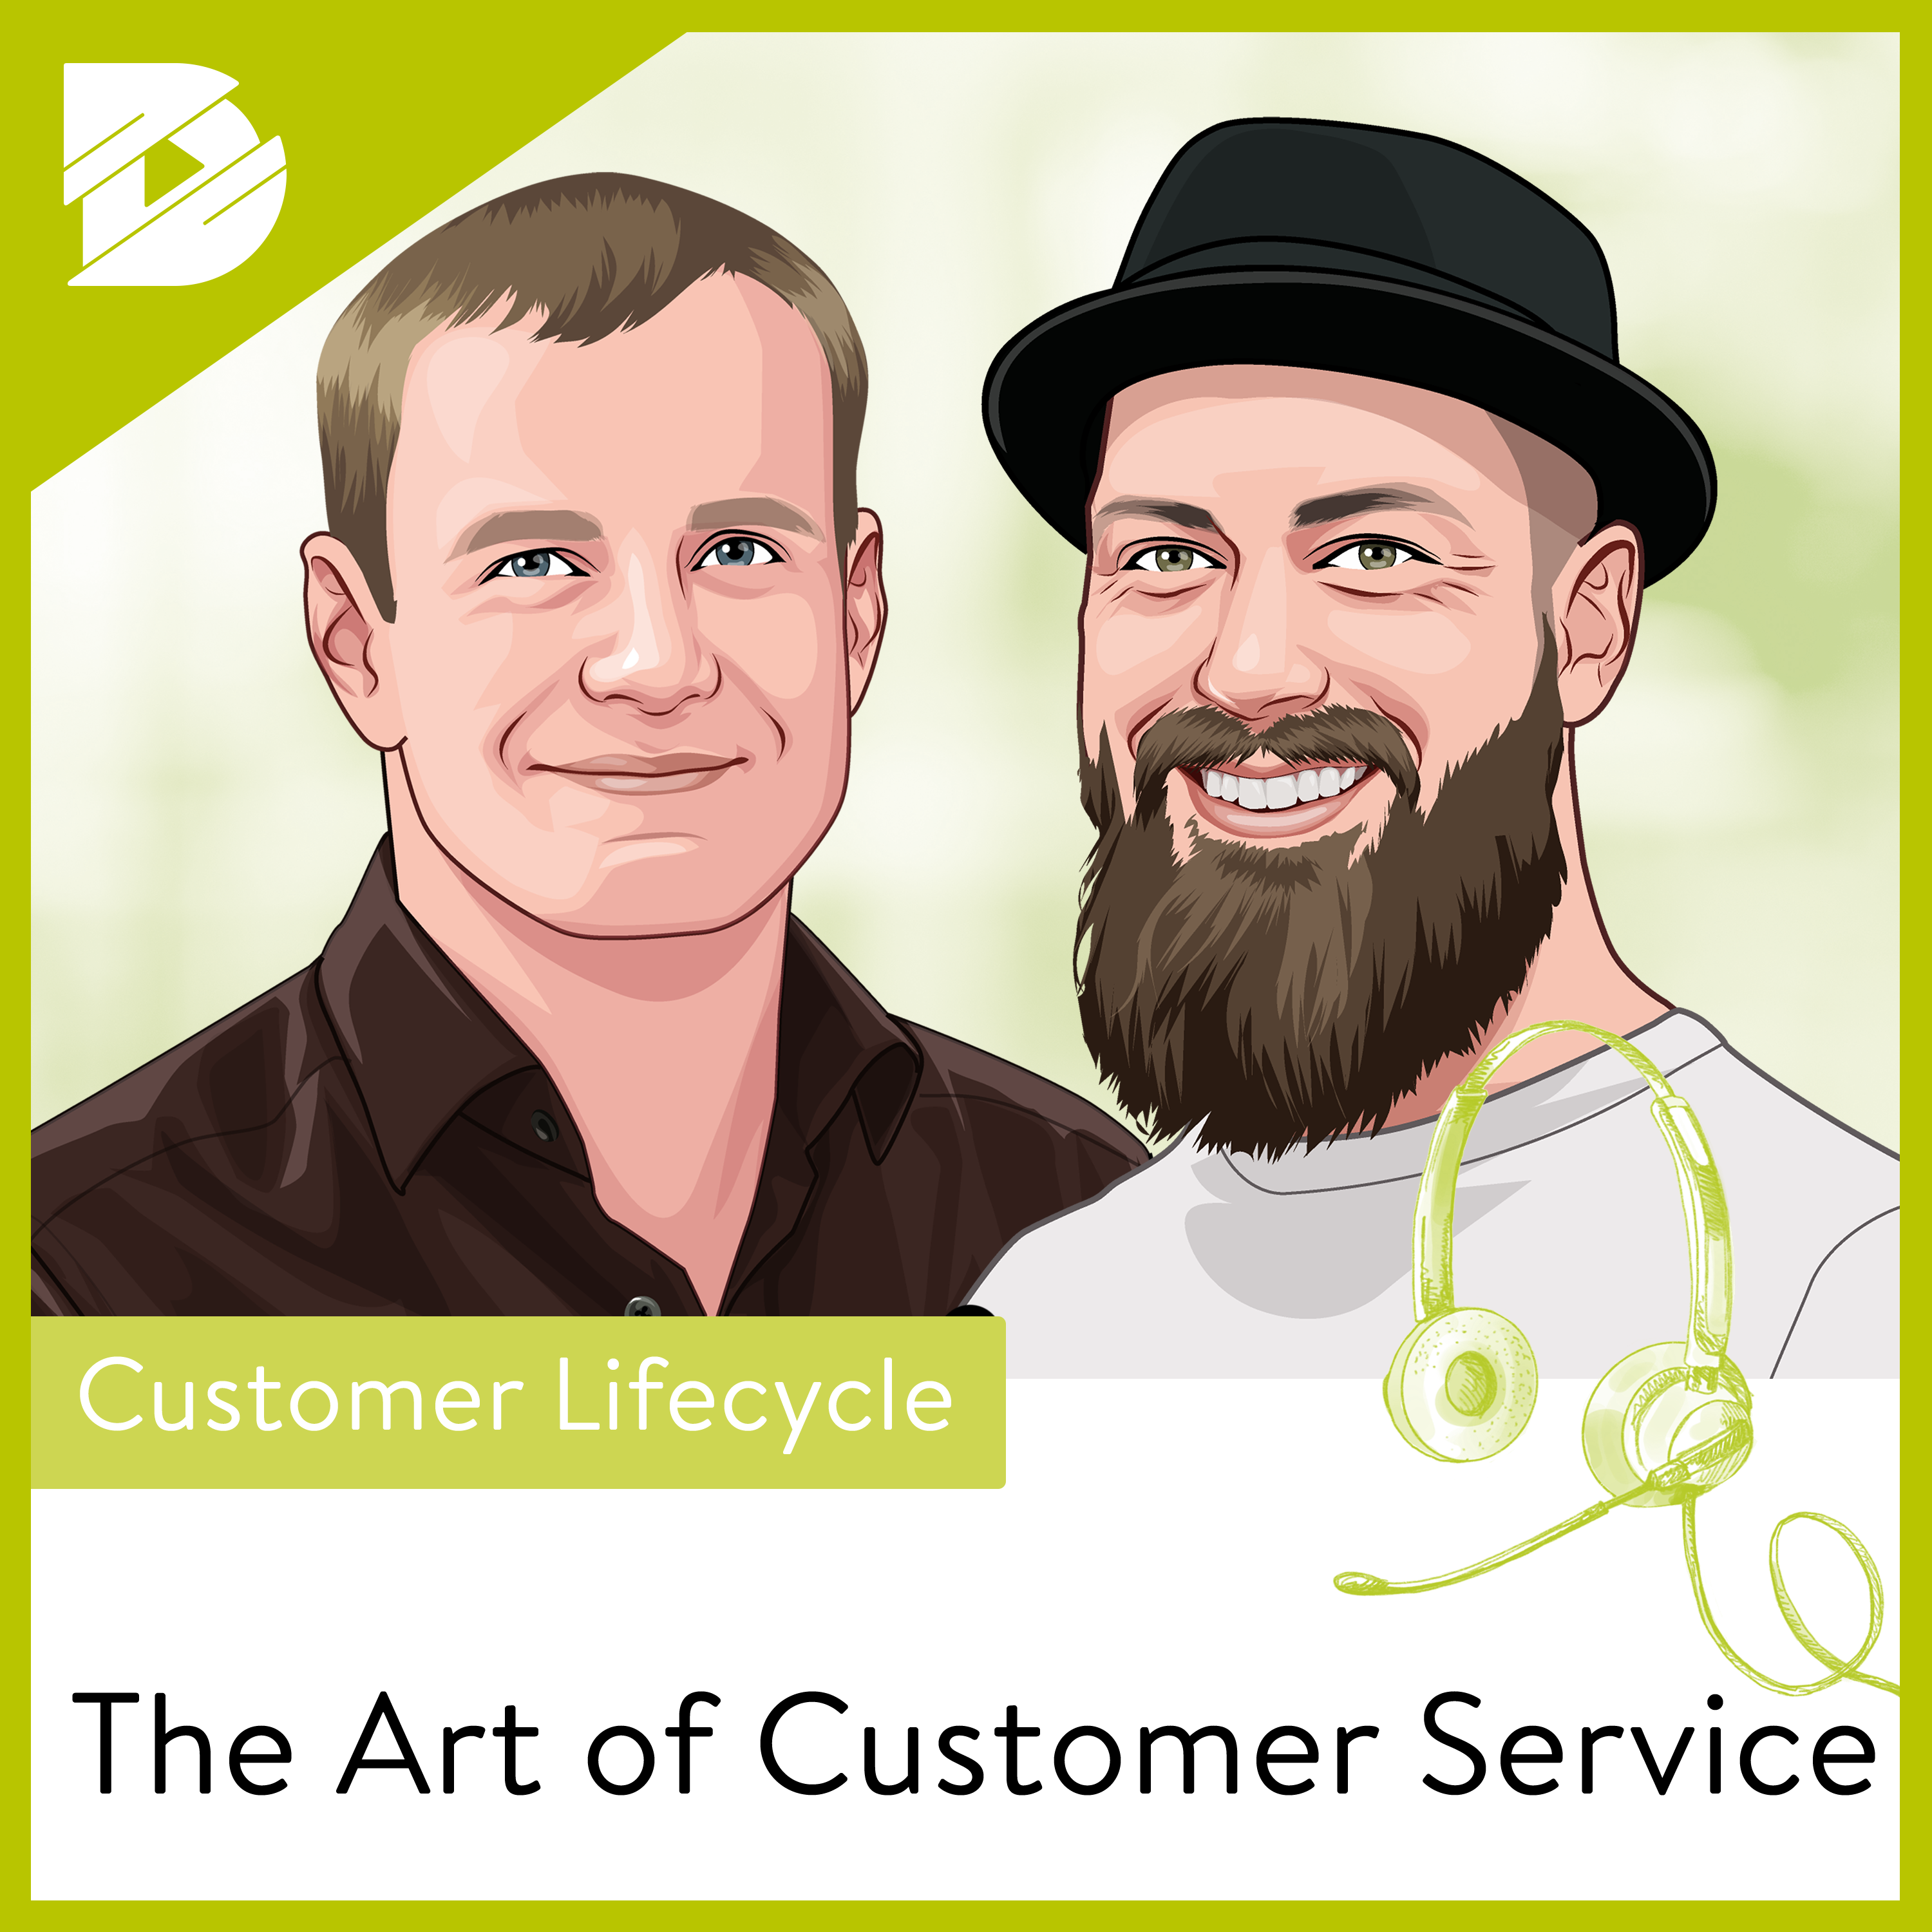 019-The-Art-of-Customer-Service-Cover